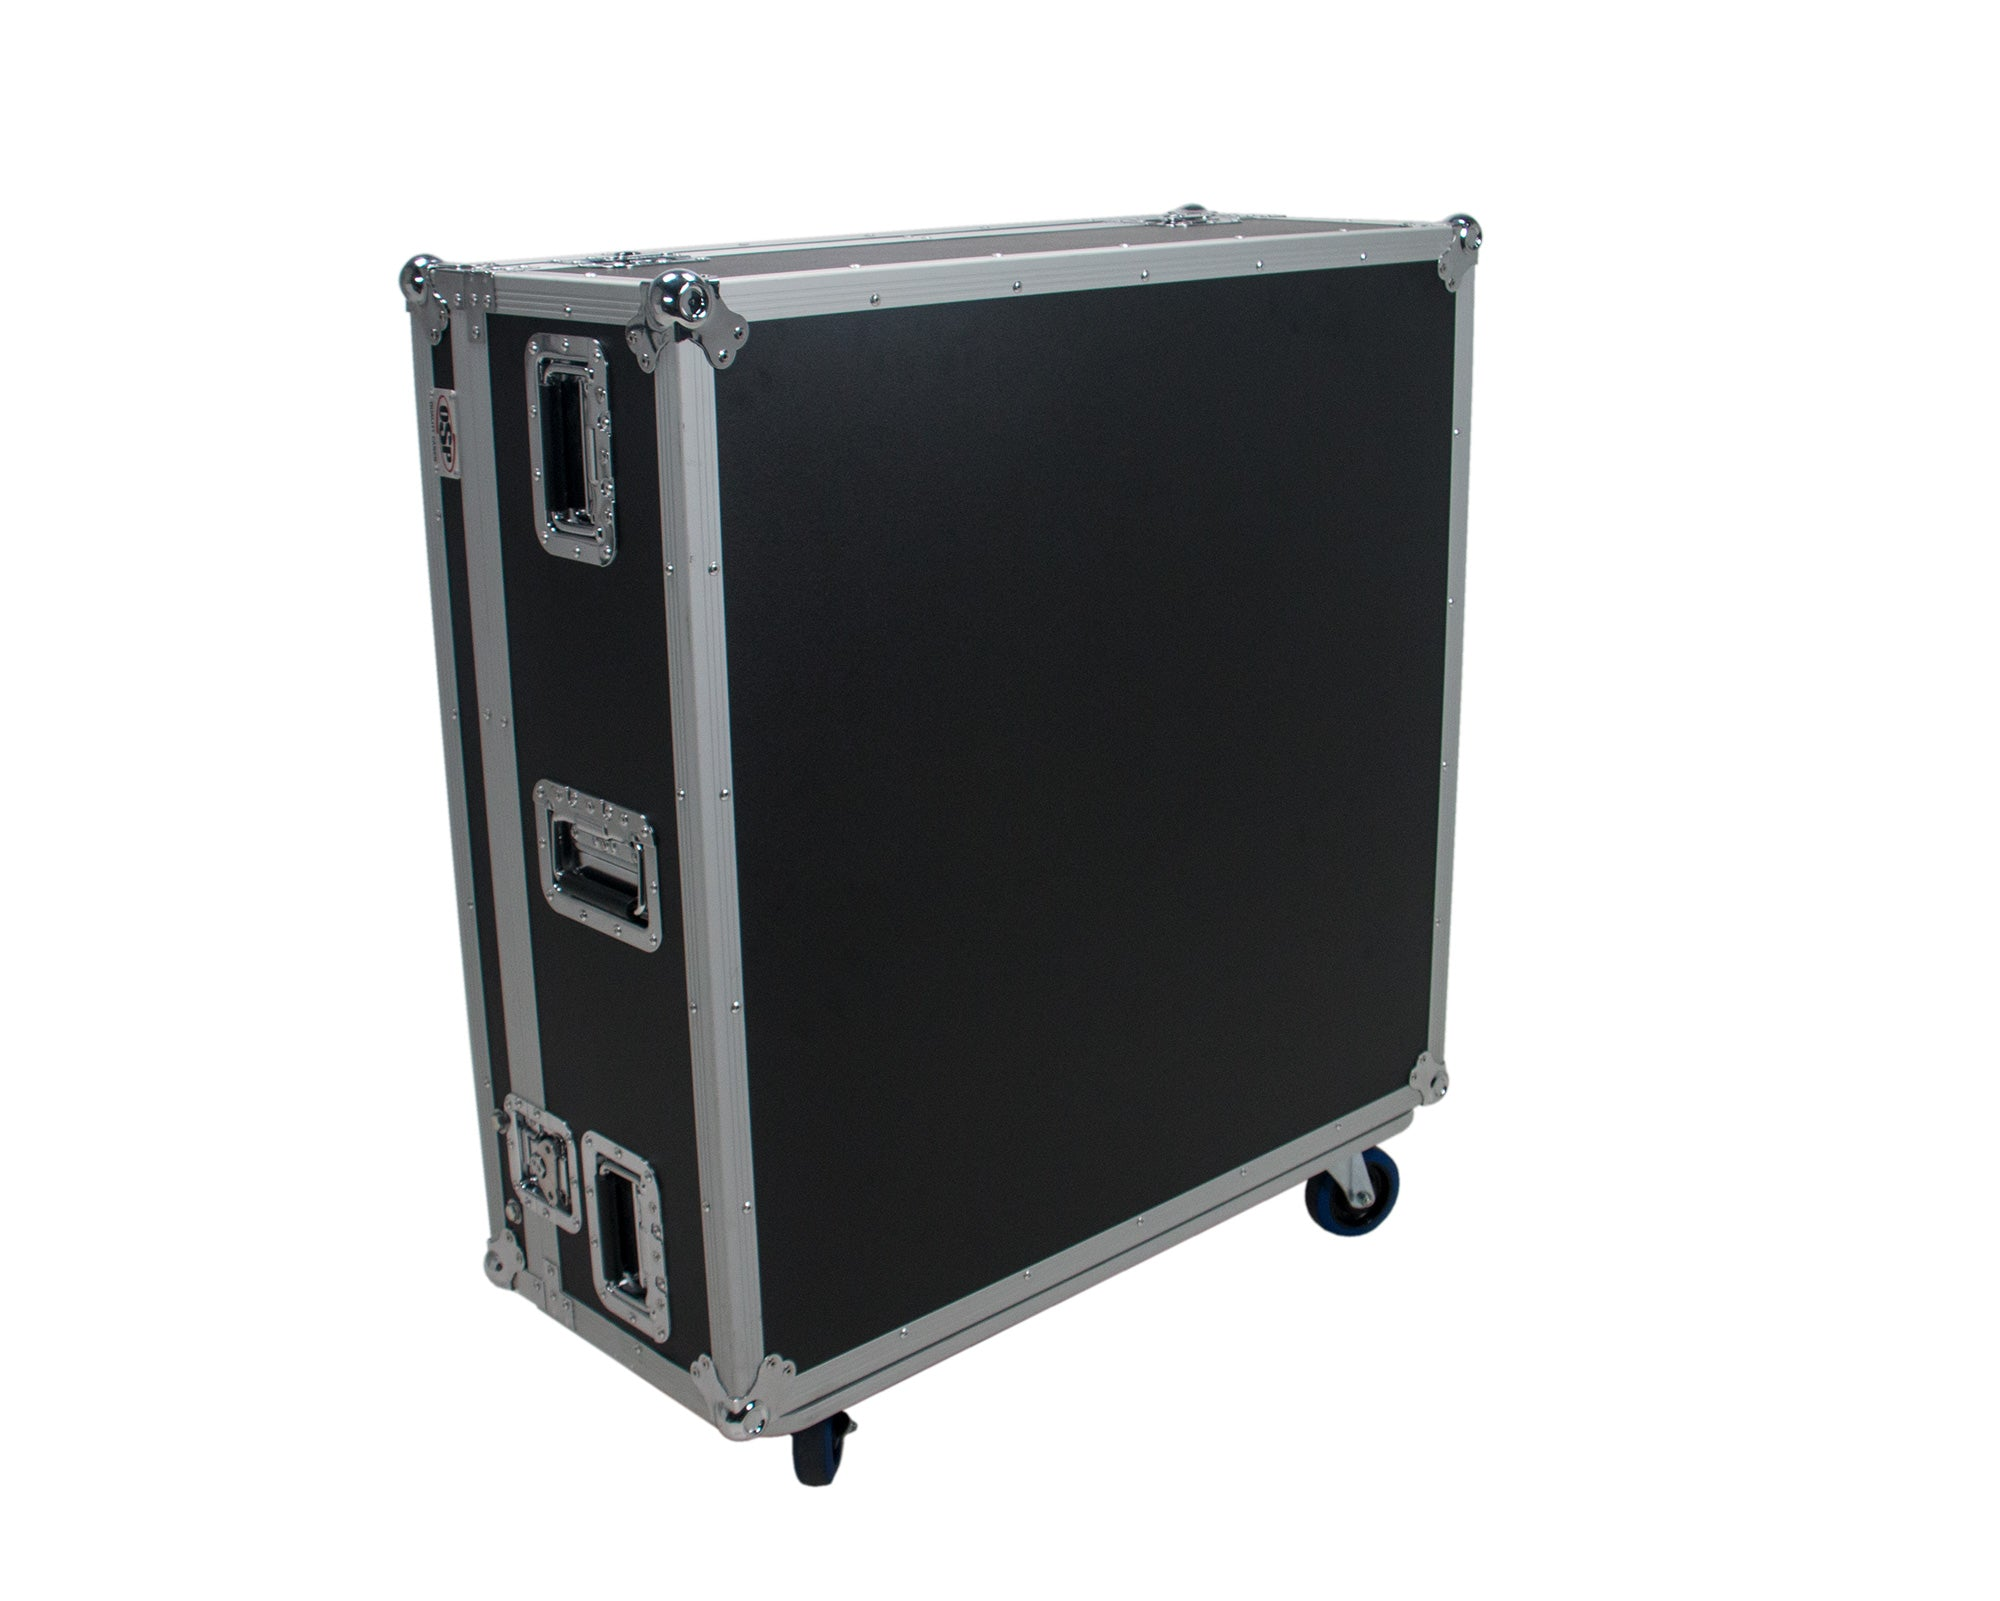 OSP ATA-STUDIOLIVE-32-WC-DH for Presonus StudioLive Series III with Casters and Doghouse